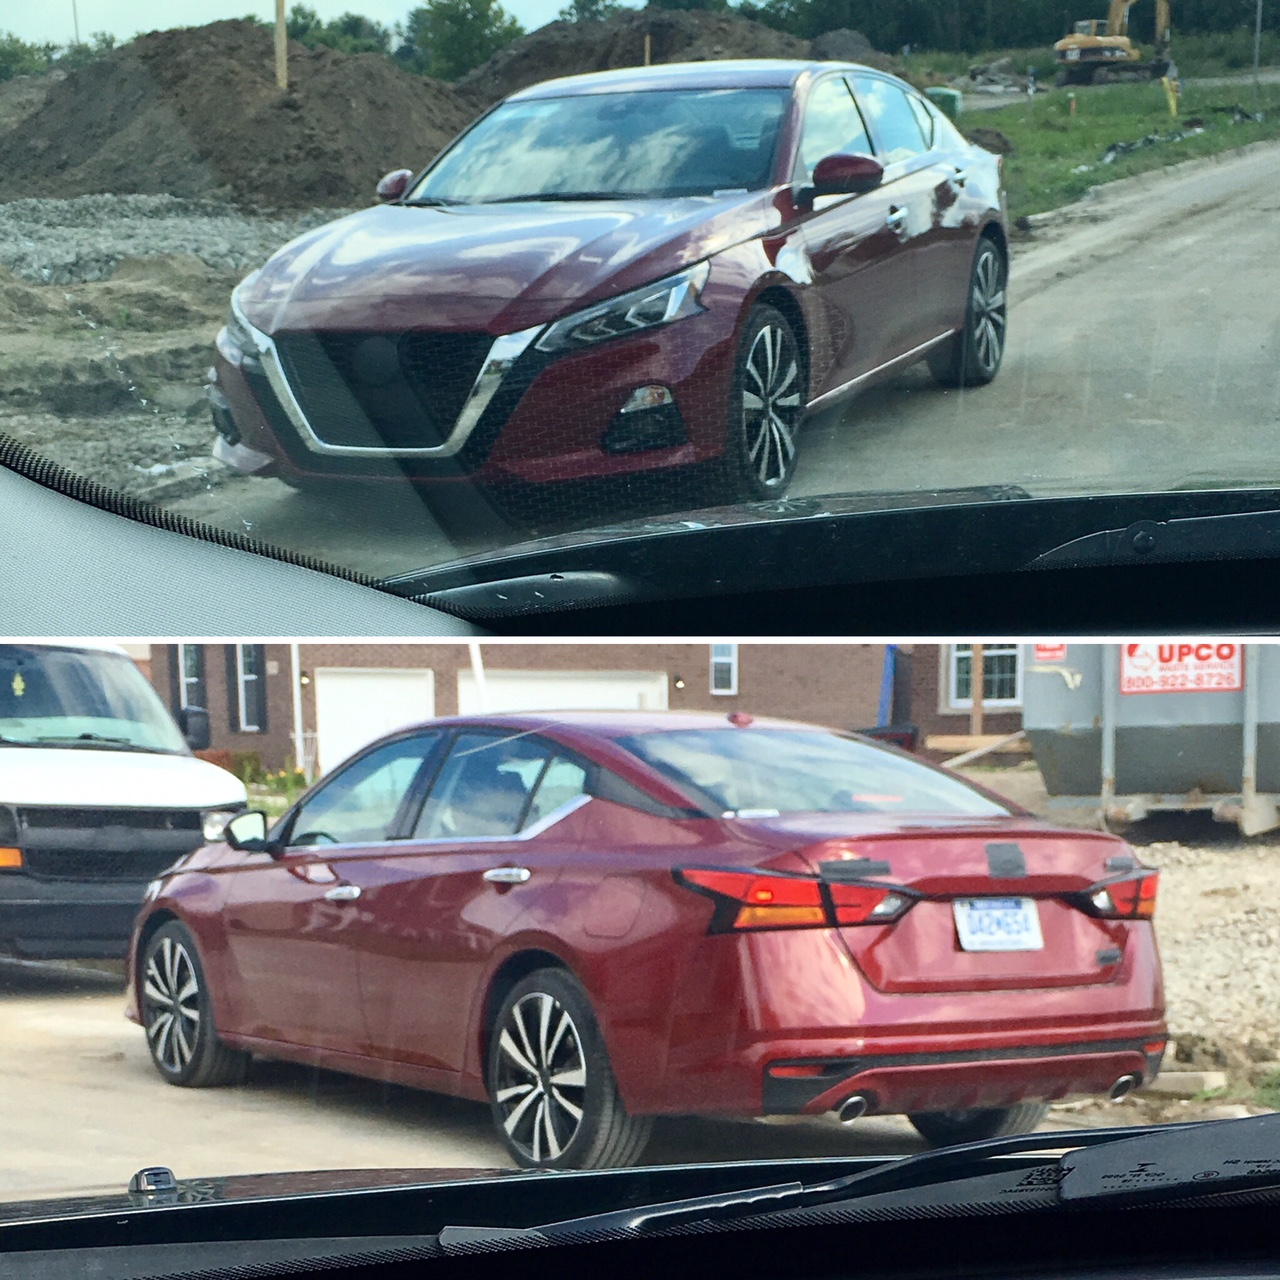 Adam's Autos: SPOTTED! The New 2019 Nissan Altima